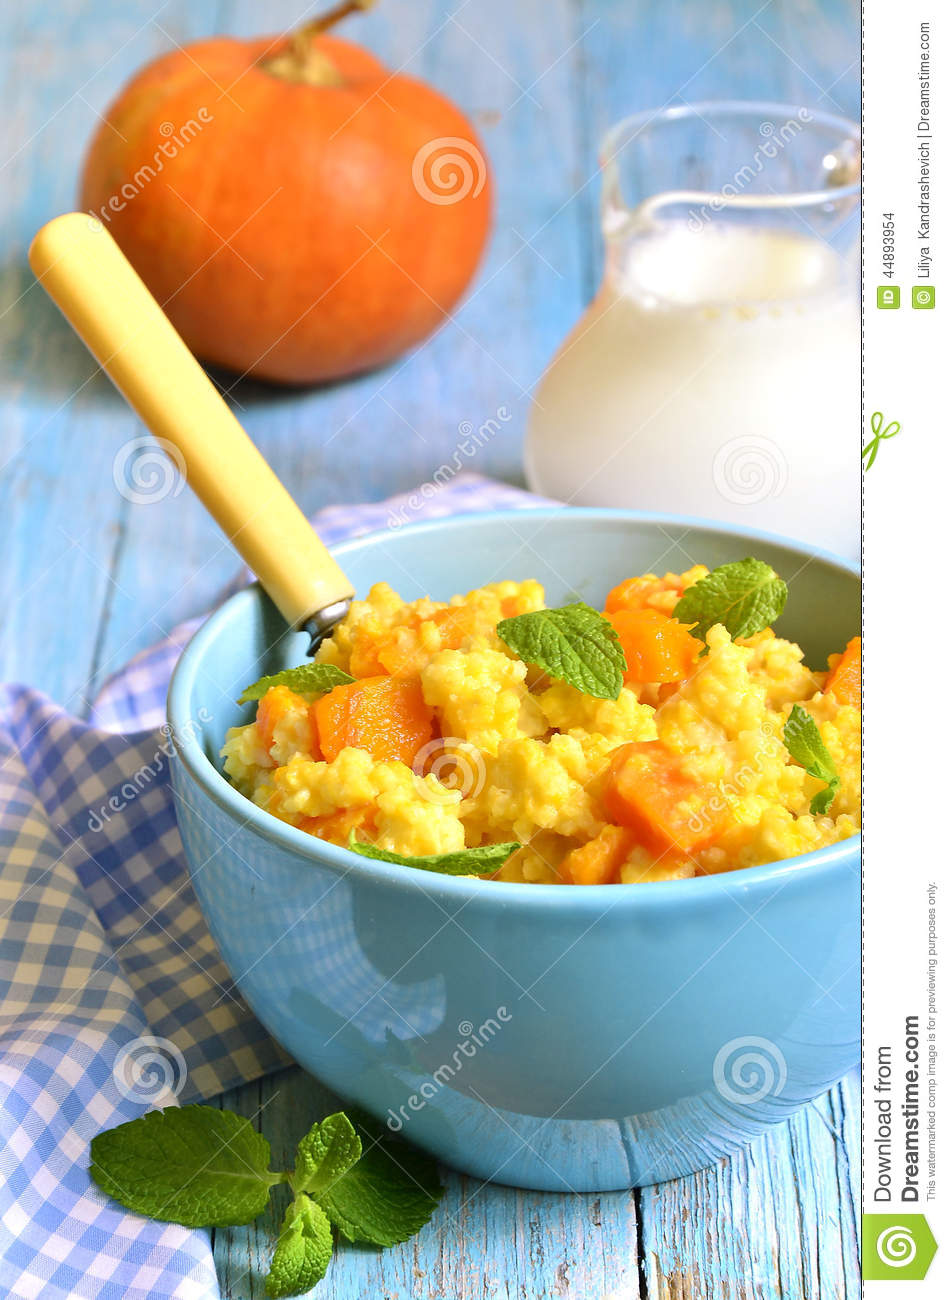 Millet Porridge. Stock Photo - Image: 44893954